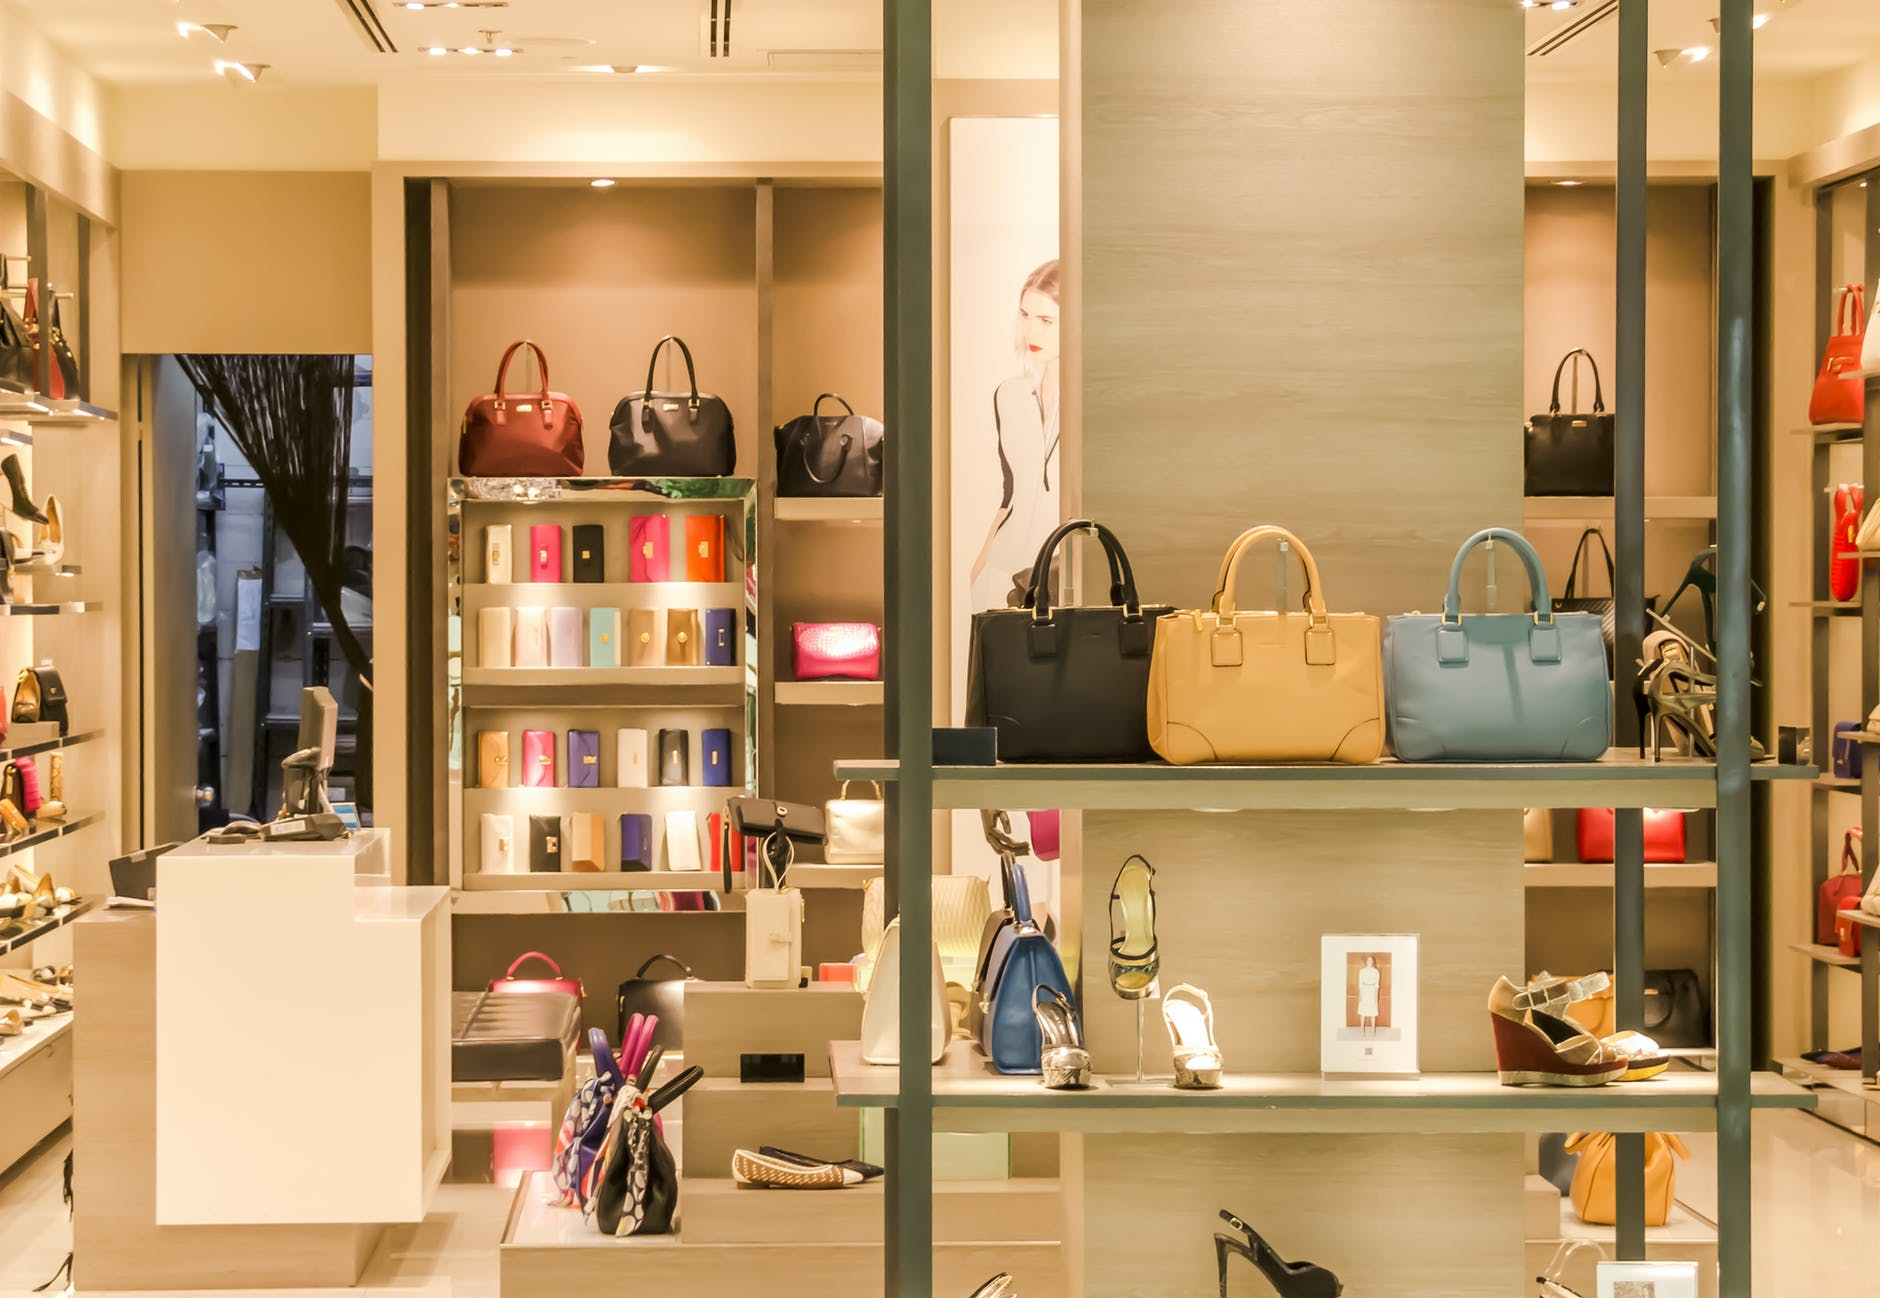 4 Retail Trends to Watch in 2019